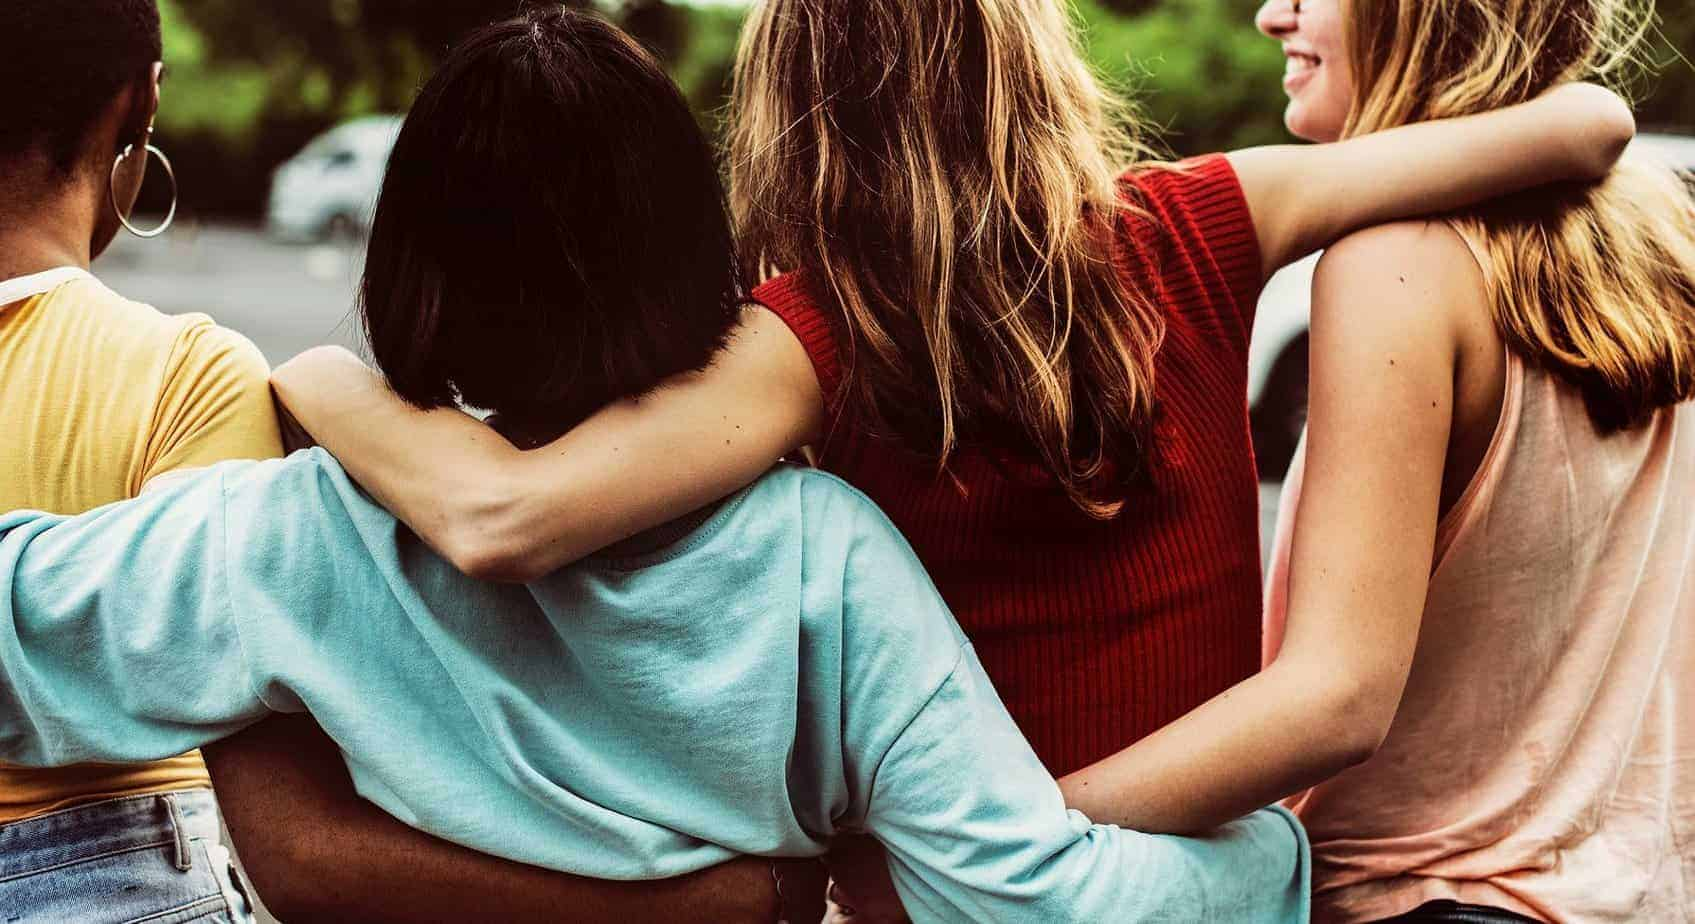 5 Reasons You Need to Get Rid of All Your Negative Friends